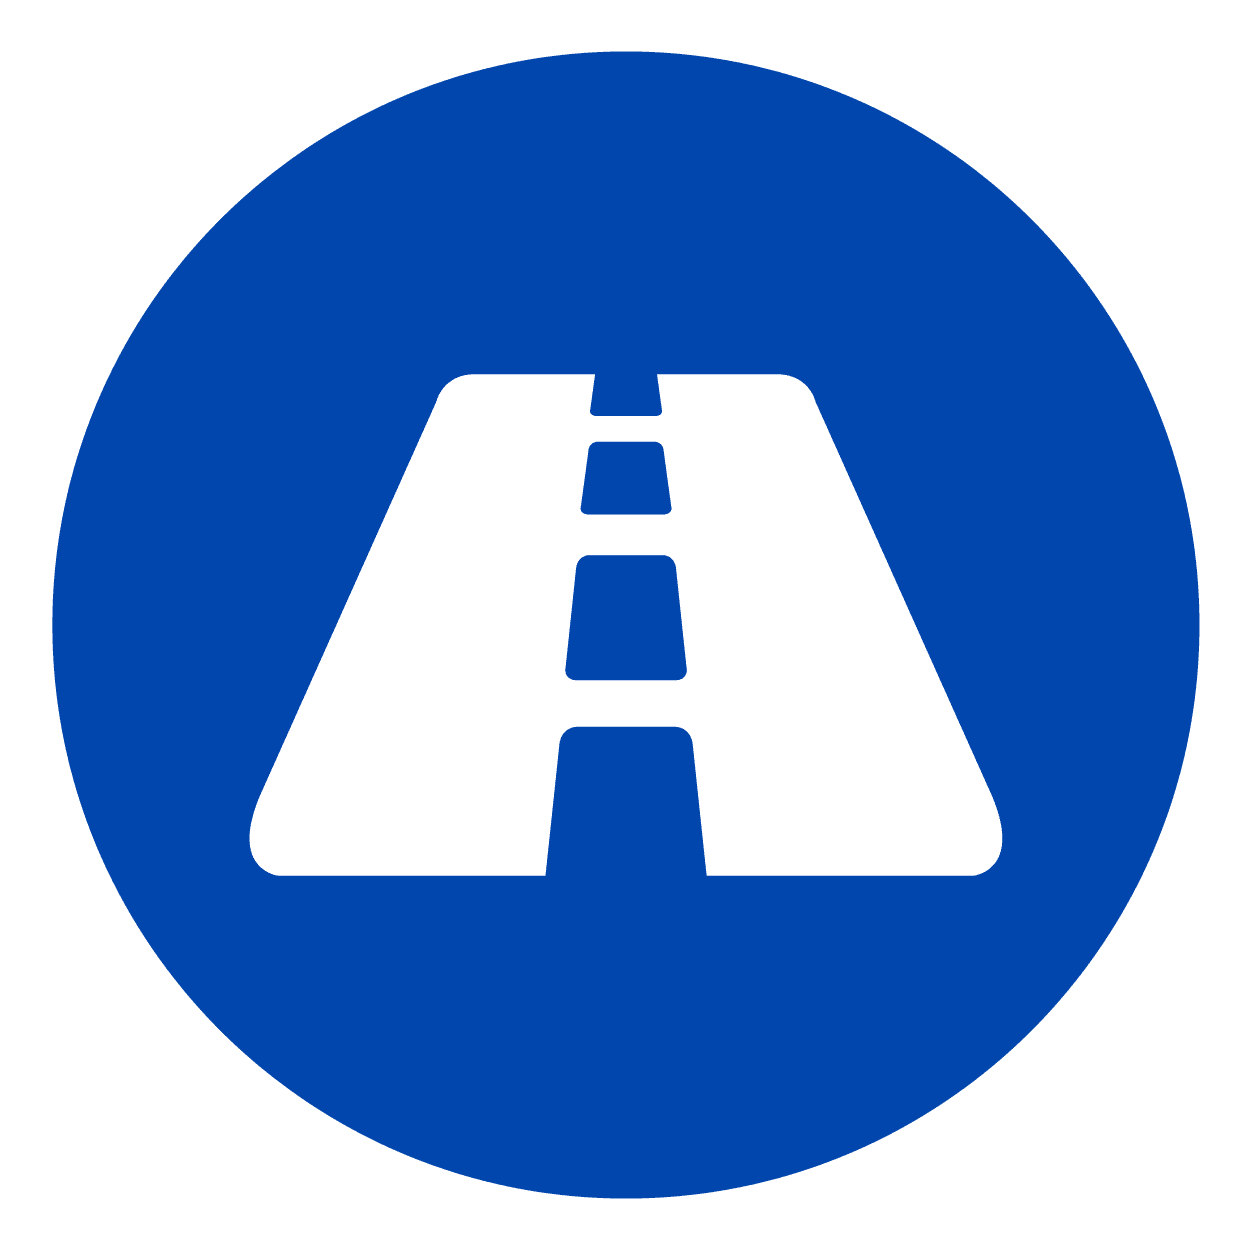 Icon of Roadway